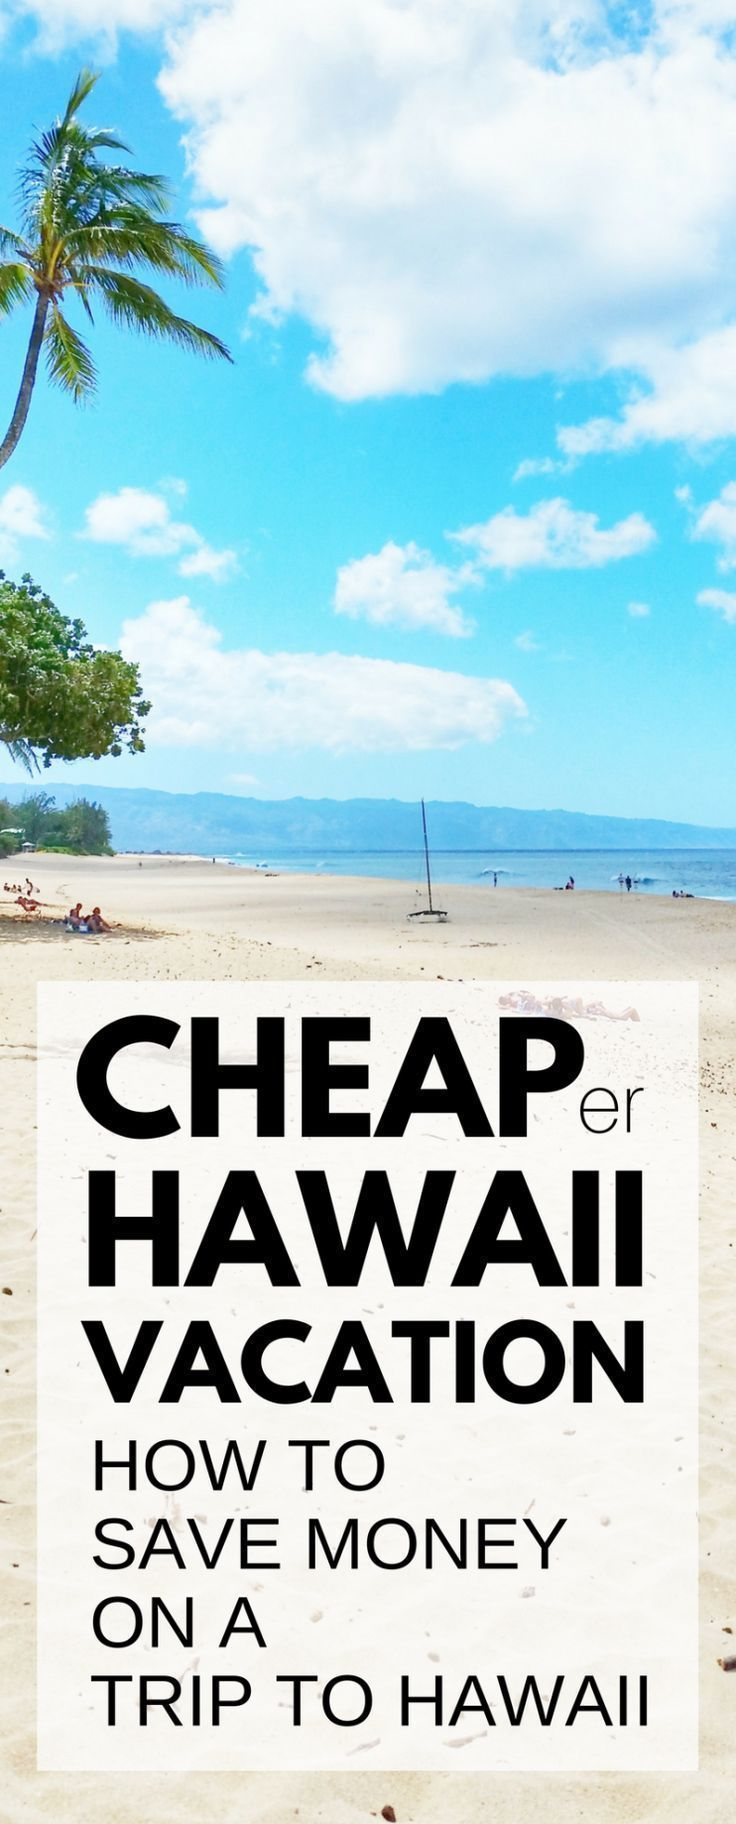 Travel tips for a cheap Hawaii vacation. How to save money